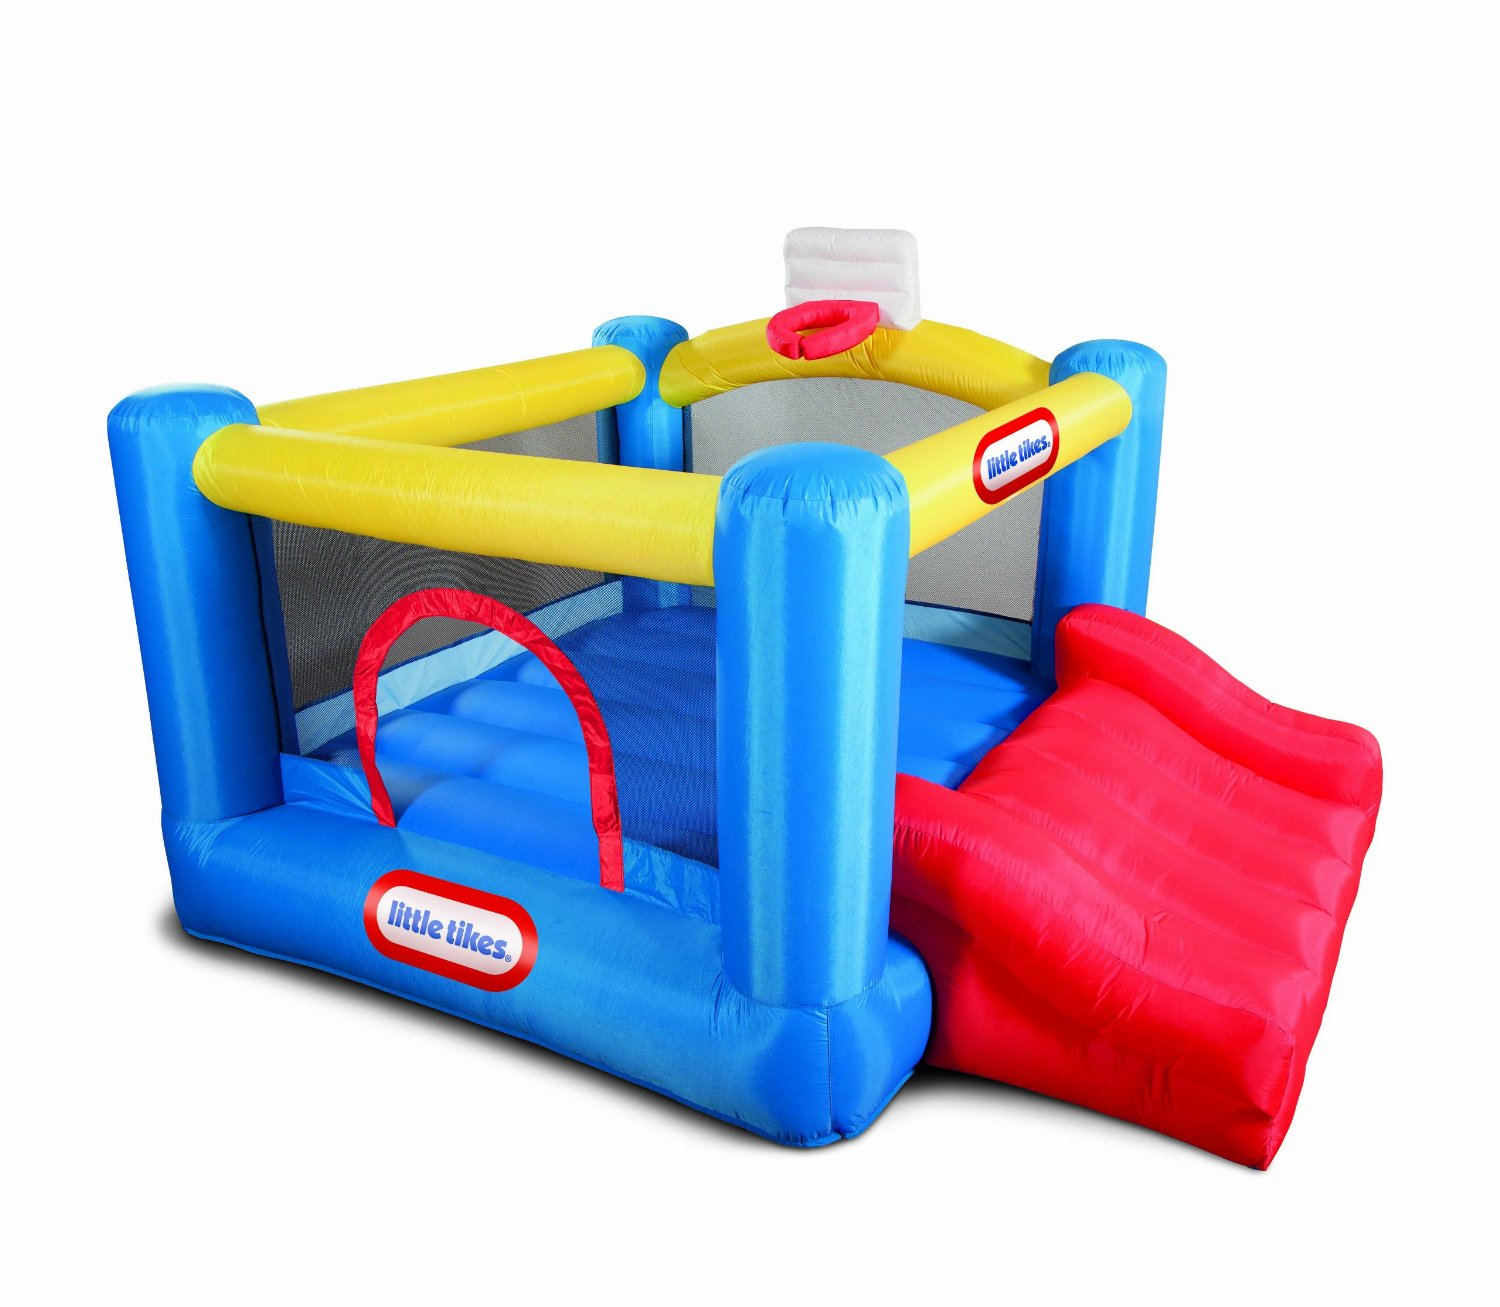 Charming Little Tikes Bounce House Made Of Caoutchouc With Red Jump Slide For Play Yard Ideas